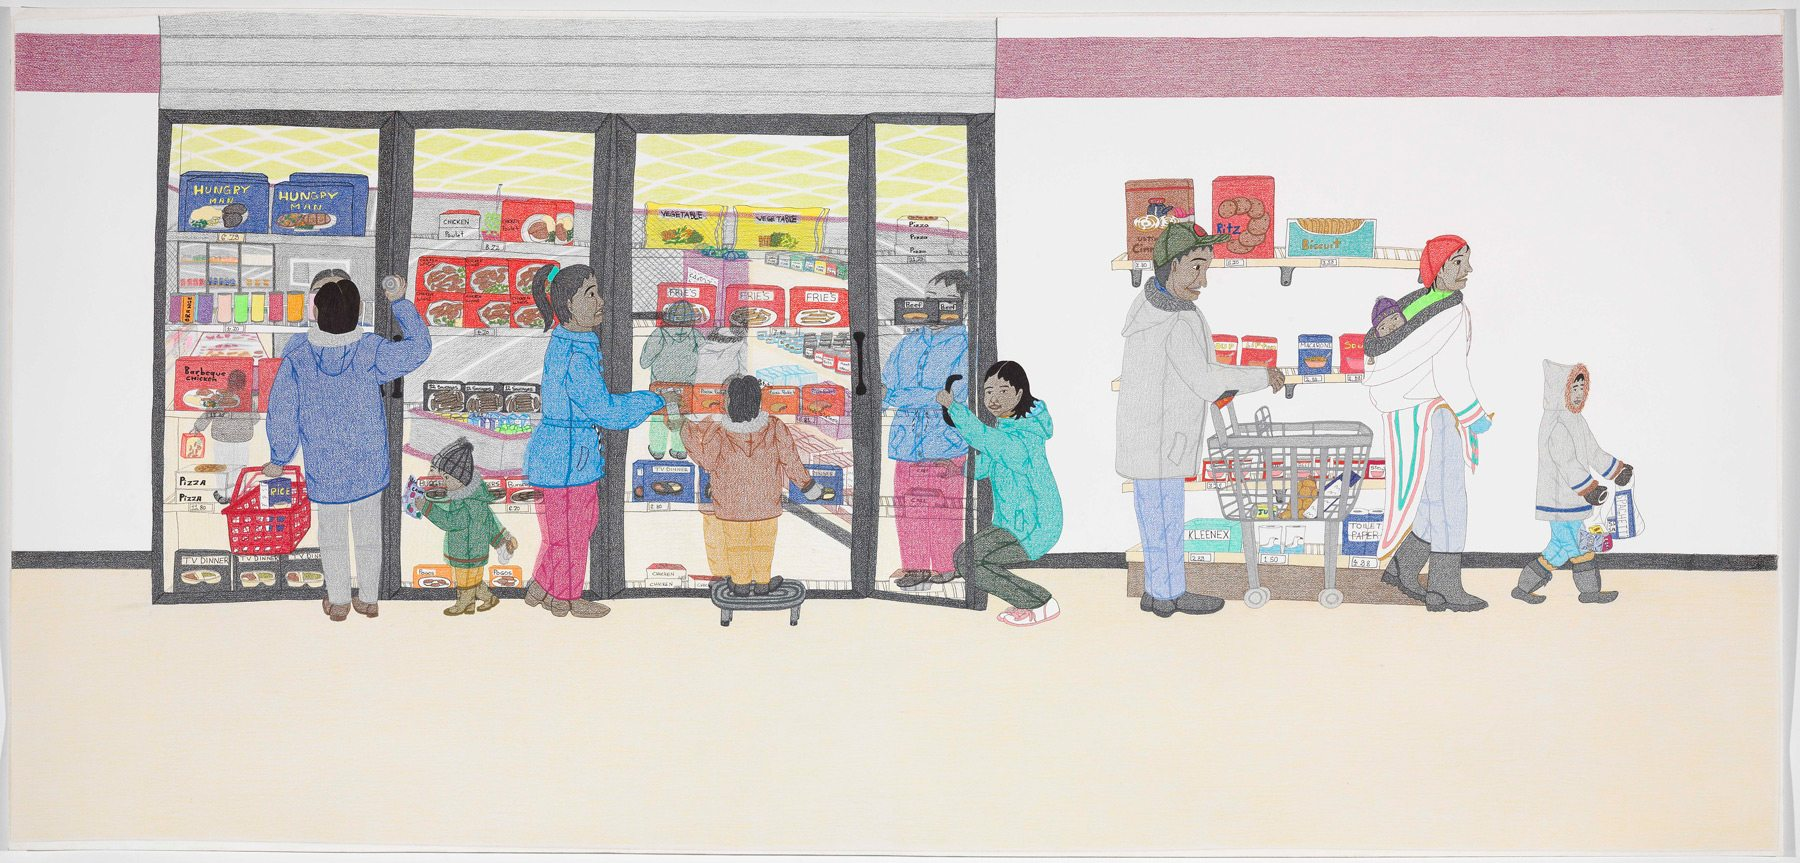 Annie Pootoogook, Cape Dorset Freezer, 2005, coloured pencil crayon, black metallic ballpoint pen and graphite on wove paper, 111.5 x 233.1 cm. National Gallery of Canada, Ottawa. Photo: NGC